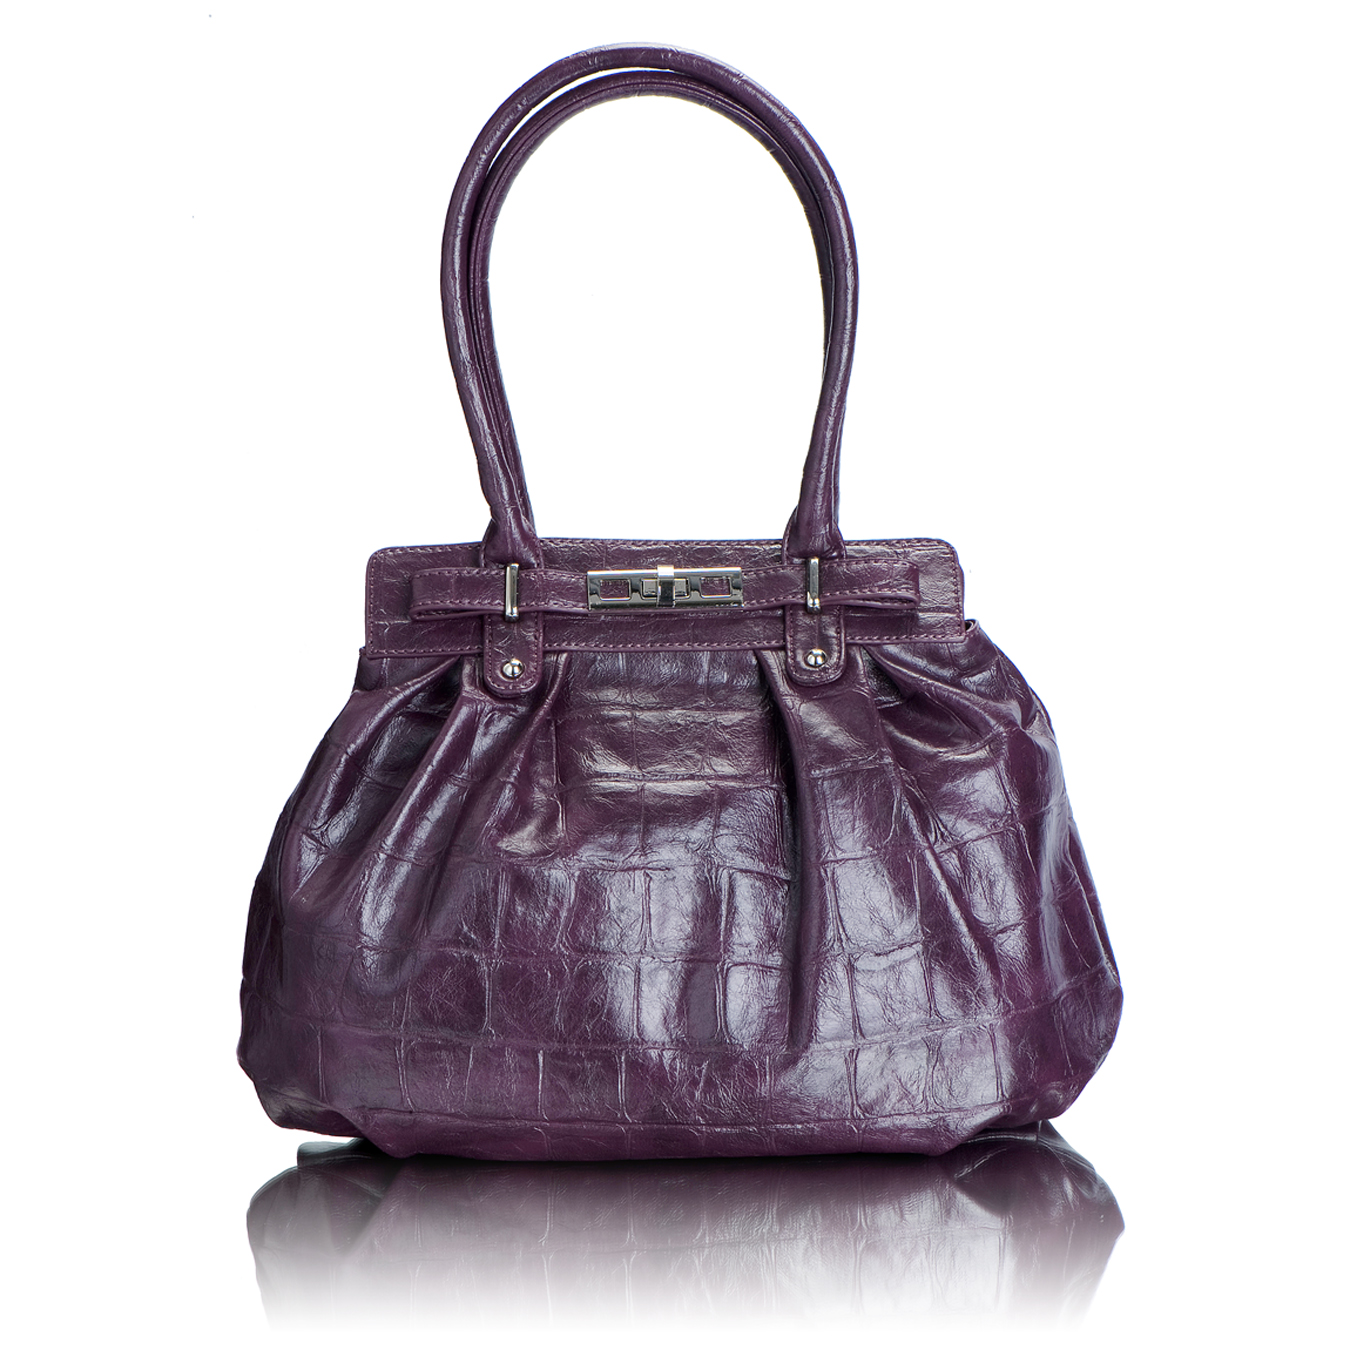 Jane Shilton Women's Turin Large Bag Tan 9875: Amazon.co.uk: Shoes